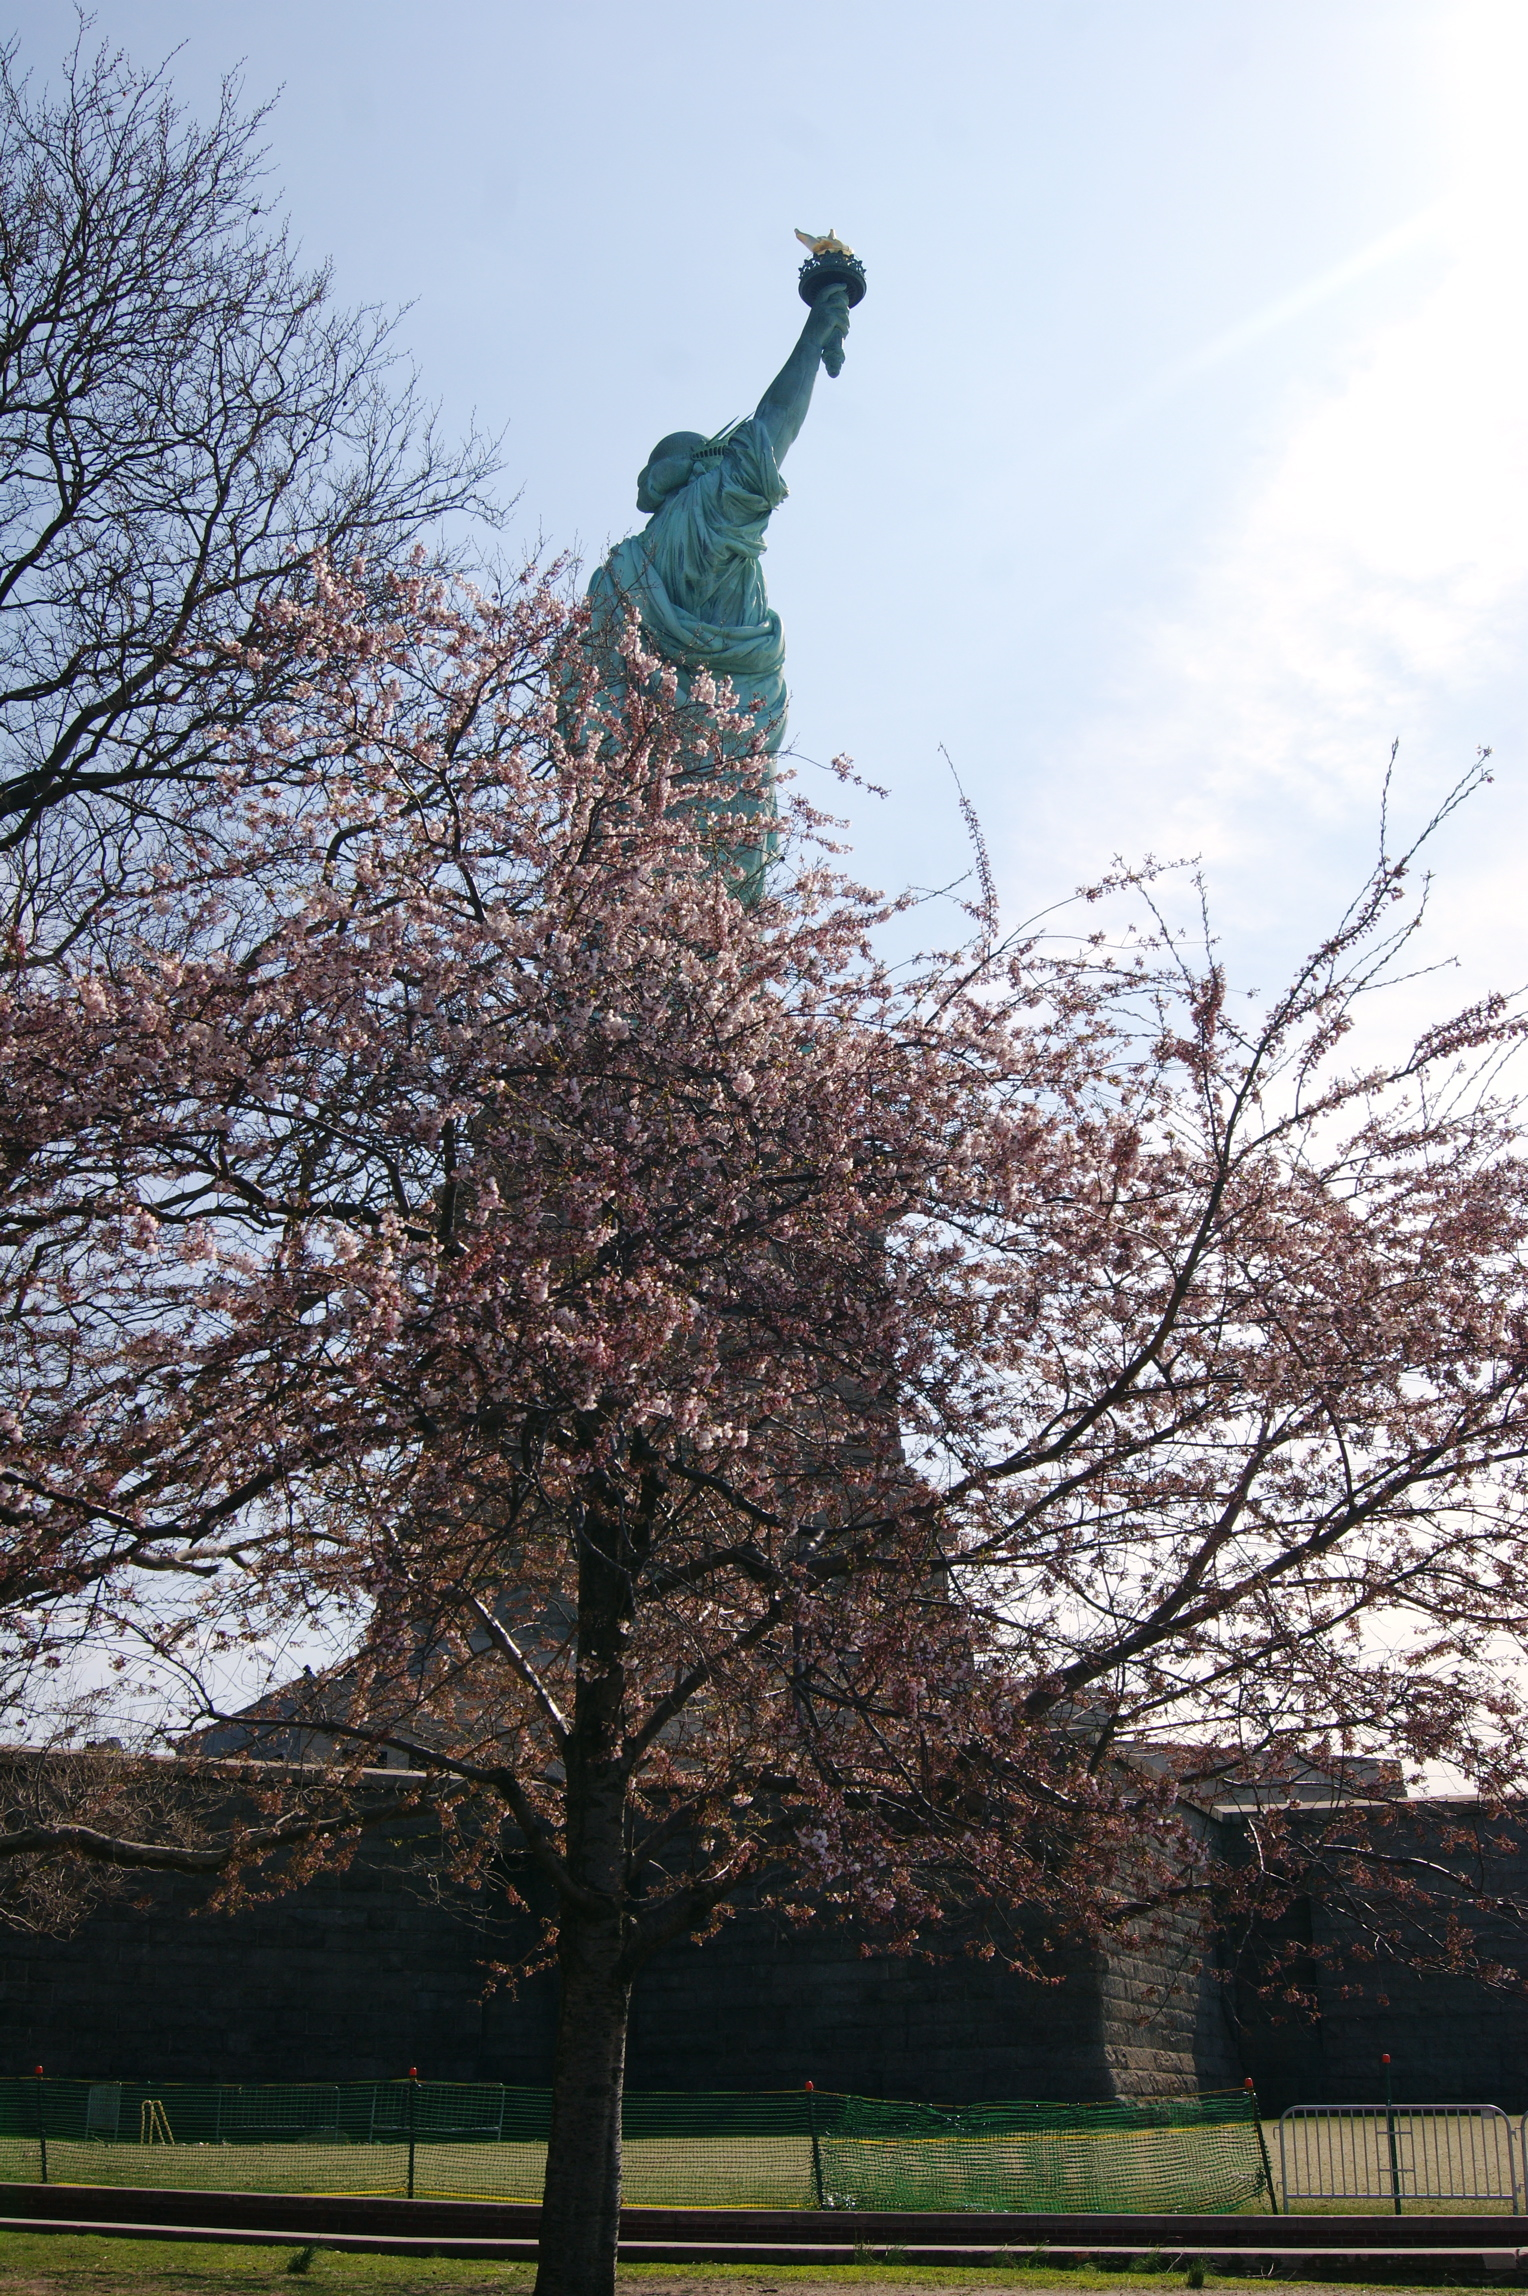 Statue in the spring